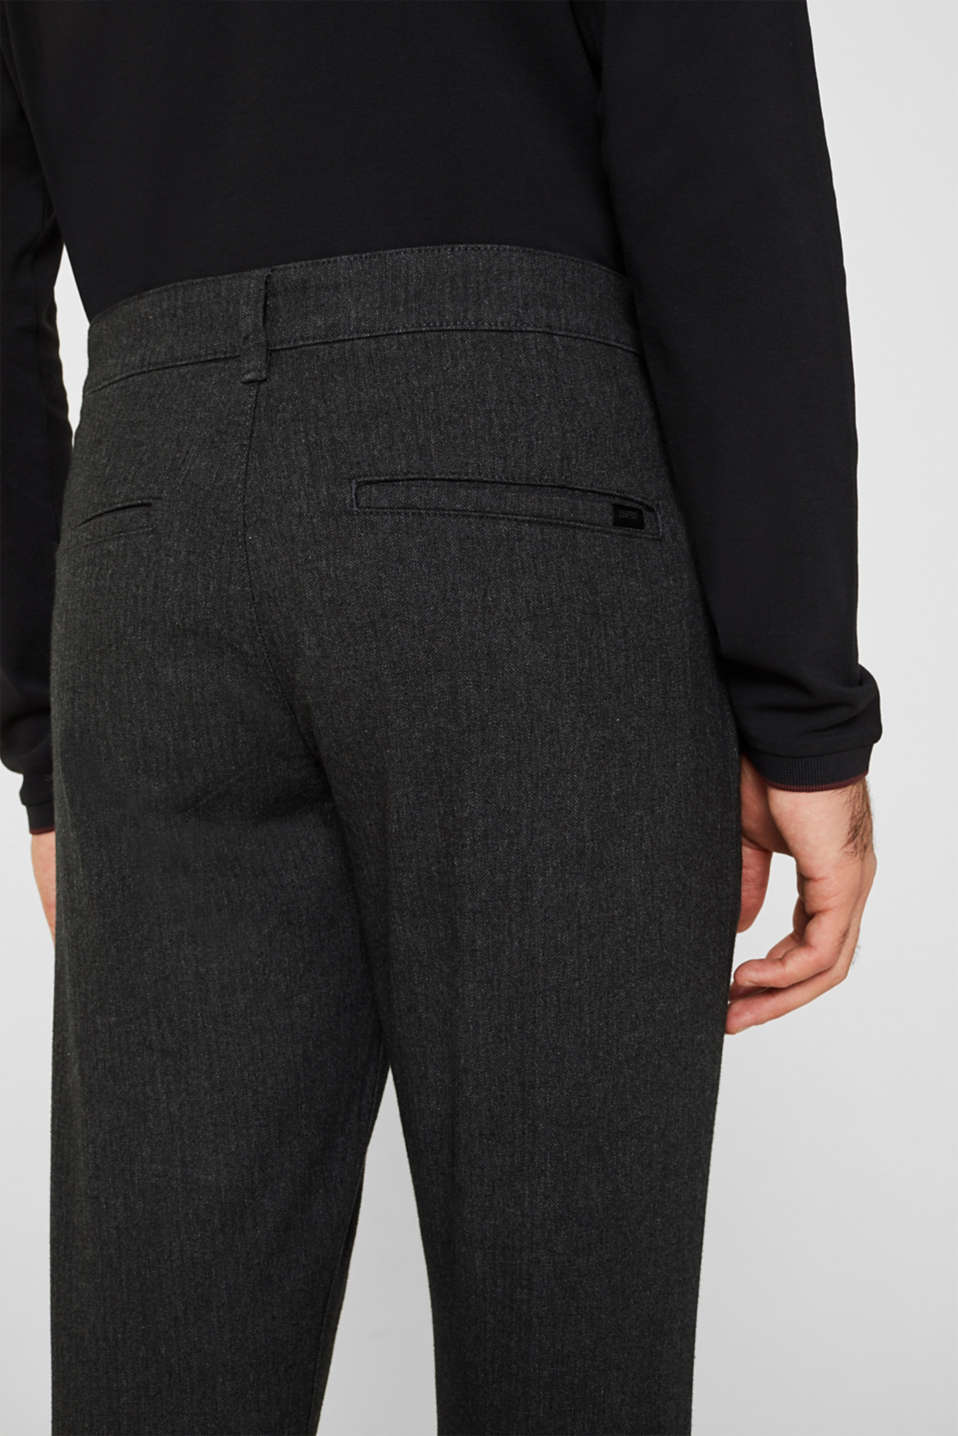 Stretch trousers with a herringbone pattern, ANTHRACITE, detail image number 2